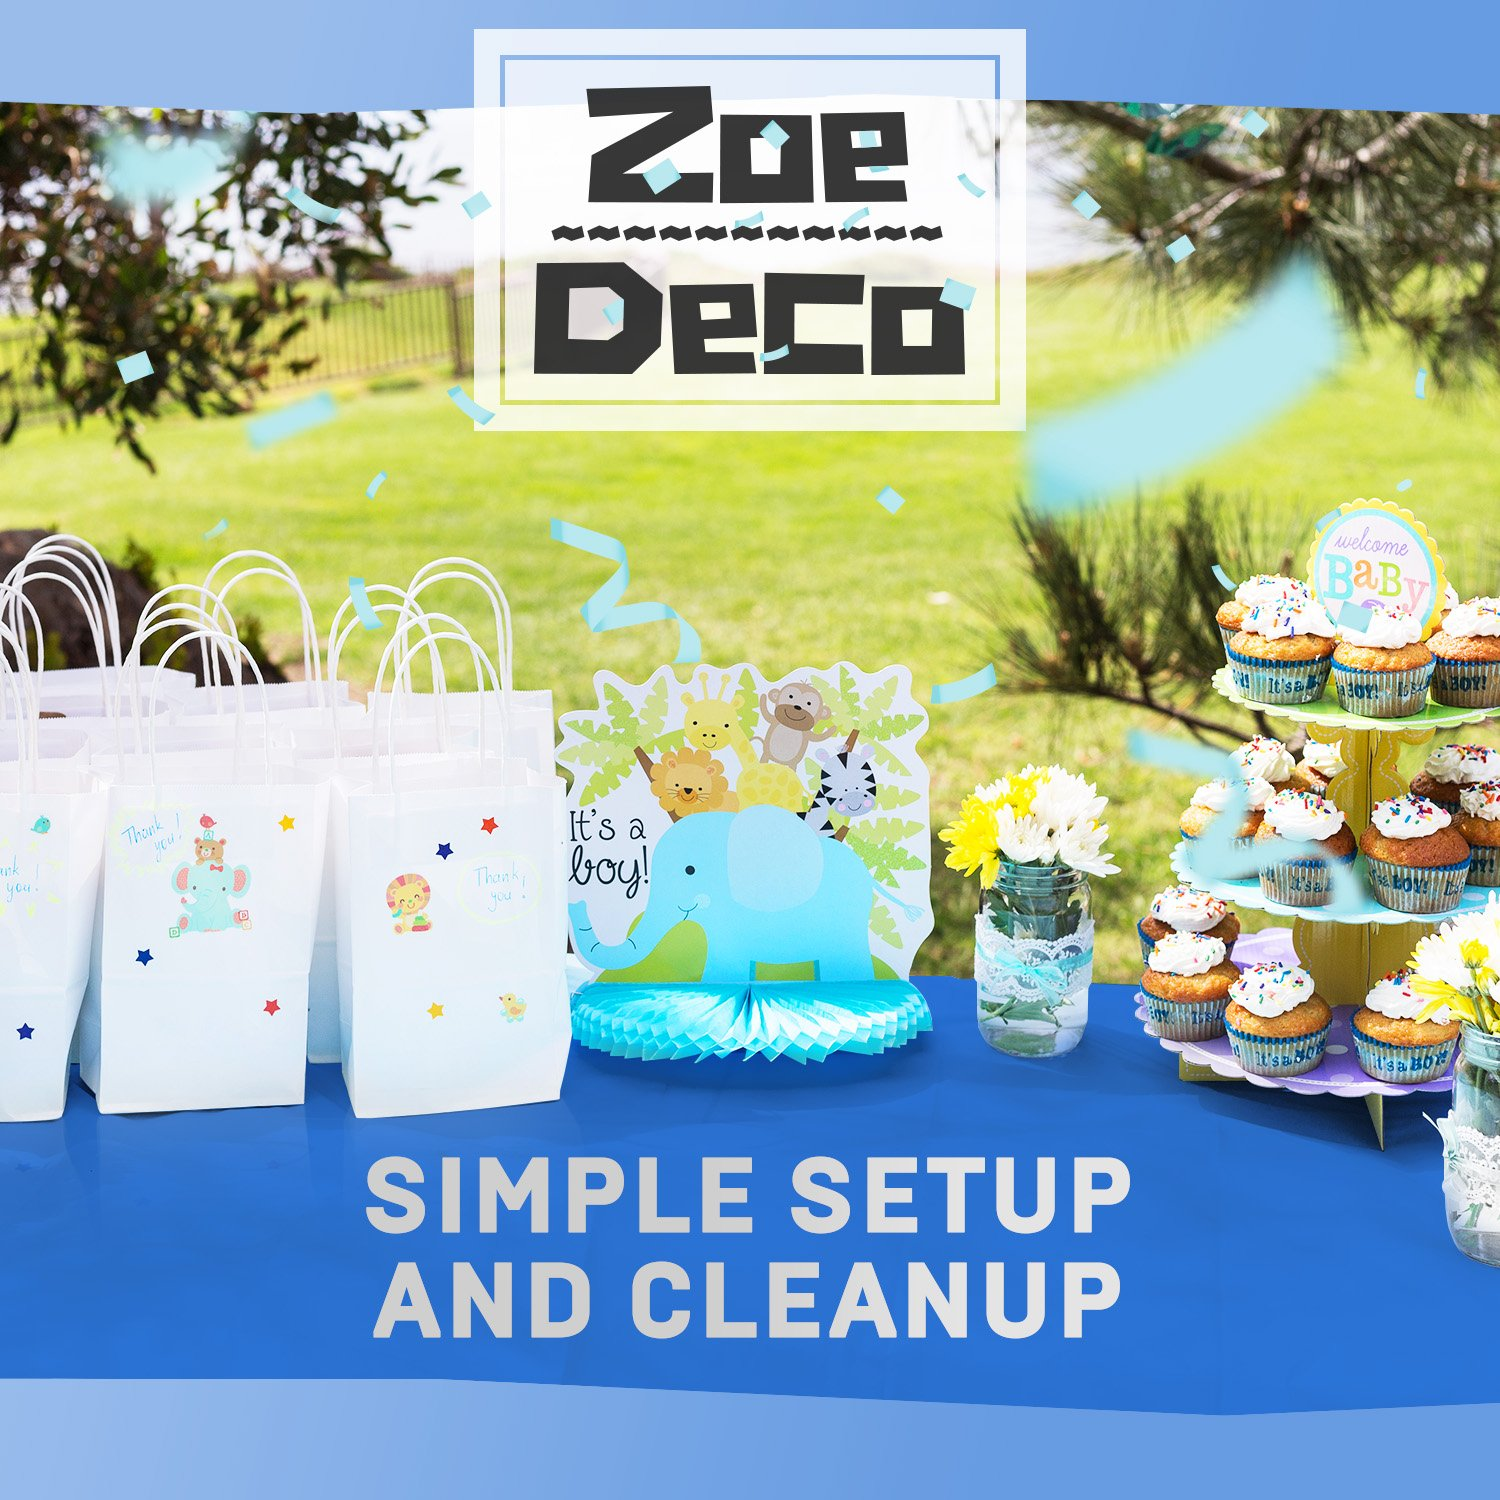 Zoe Deco Plastic Tablecloth, 54'' x 108'' Blue Tablecloth - 12 Pack - Rectangle Tablecloth for Parties, Graduations, and Picnics by Zoe Deco (Image #7)